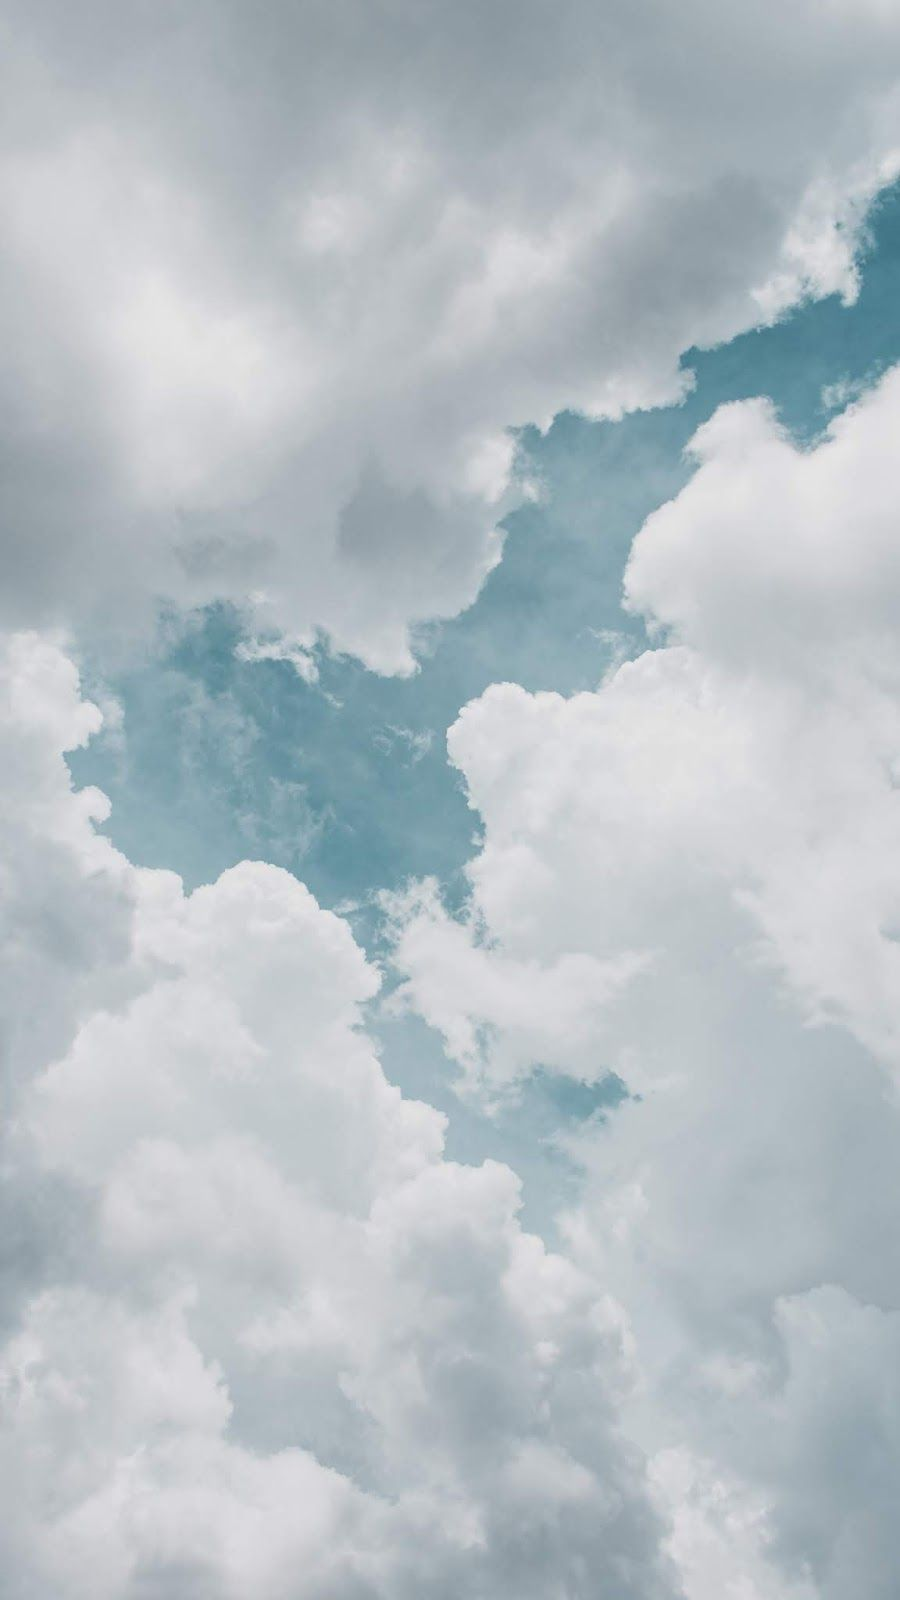 Clouds wallpaper iphone android background followme   Clouds ...